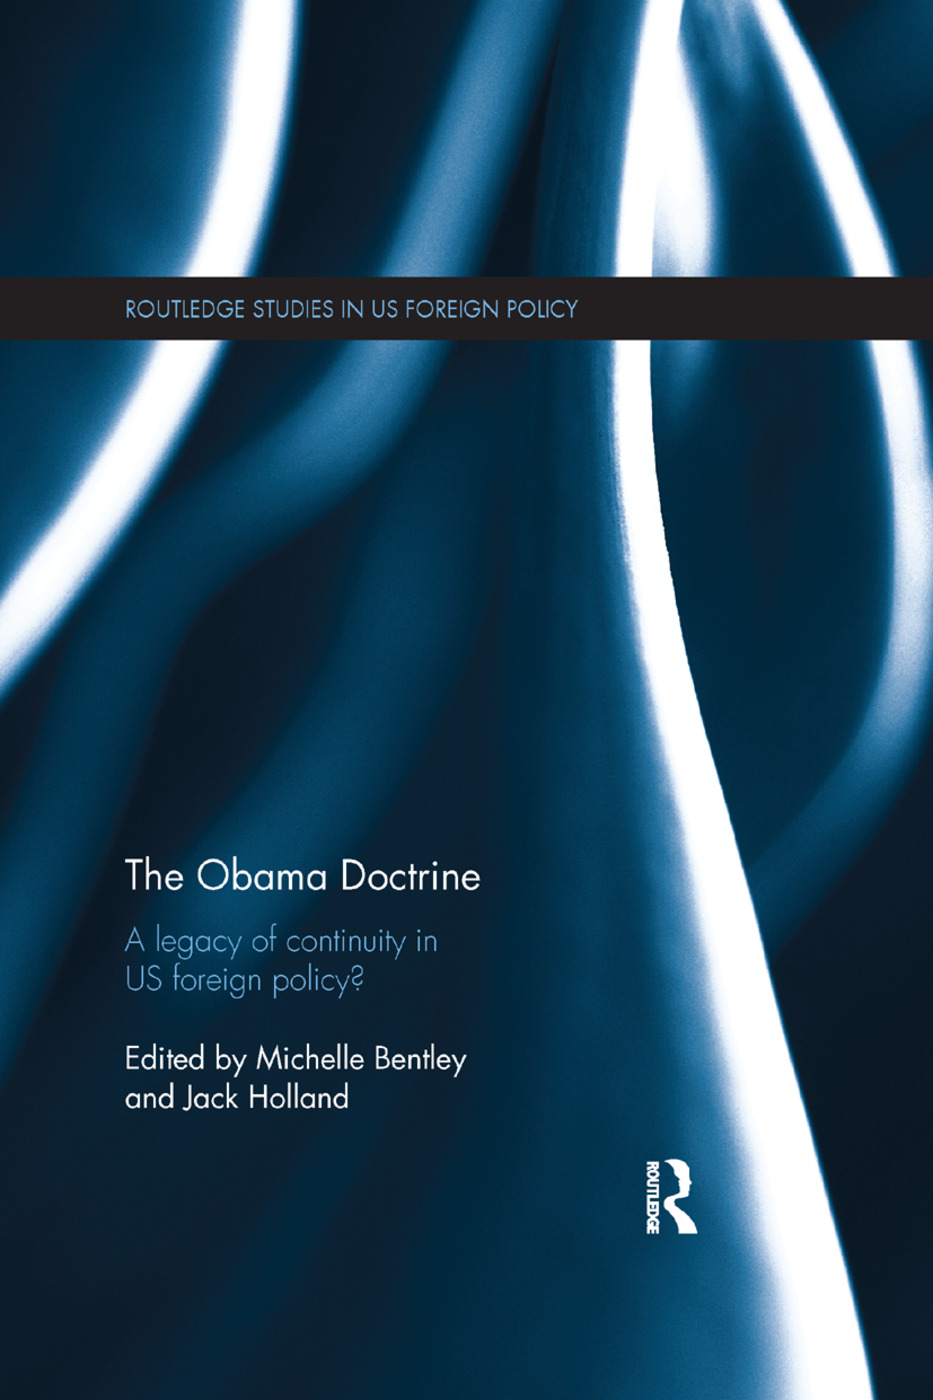 The Obama Doctrine: A Legacy of Continuity in US Foreign Policy? book cover